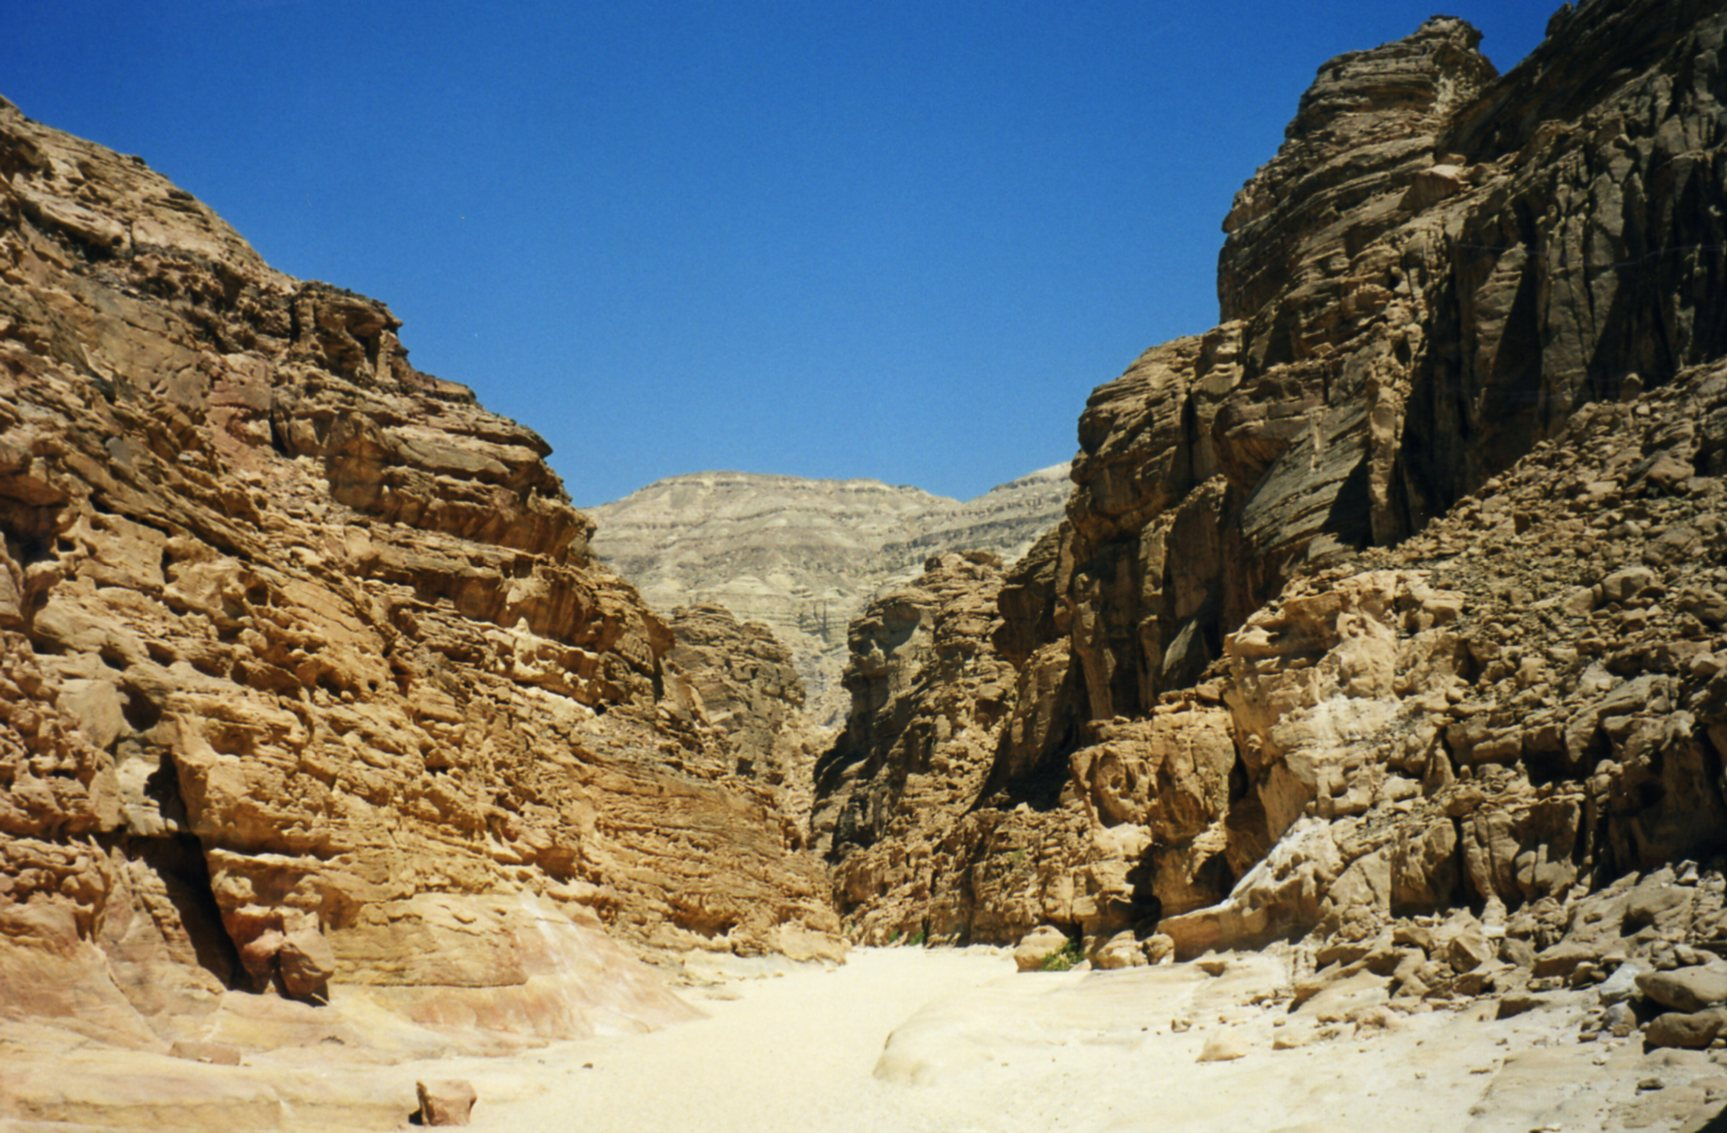 The Sinai desert and the Coloured Canyon